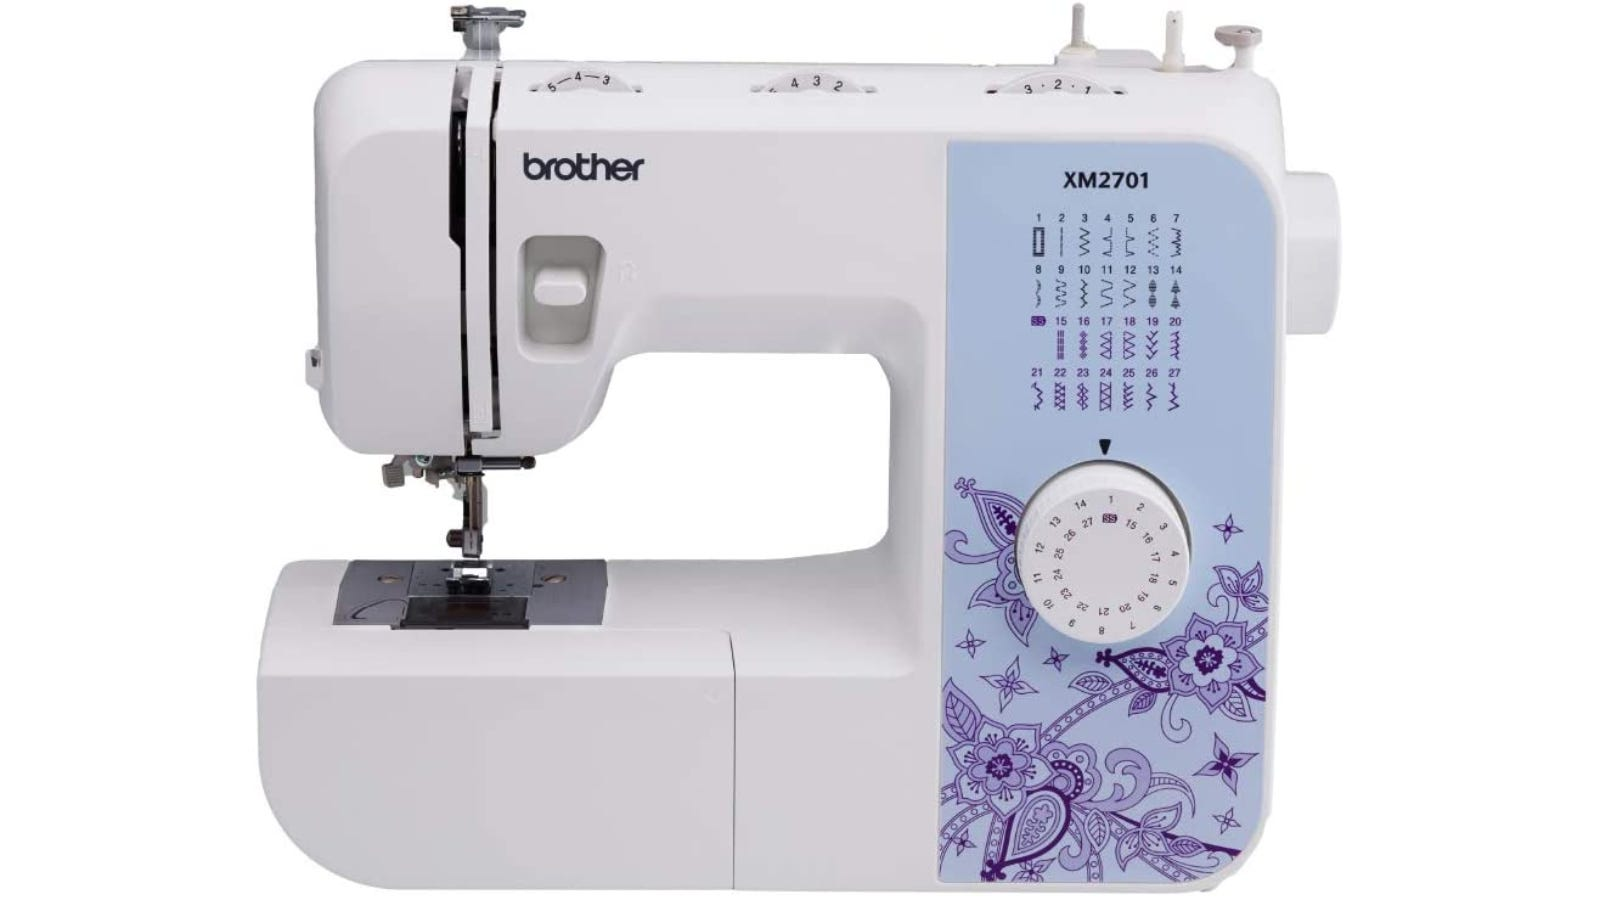 off white sewing machine with a blue background and purple designs around the knob